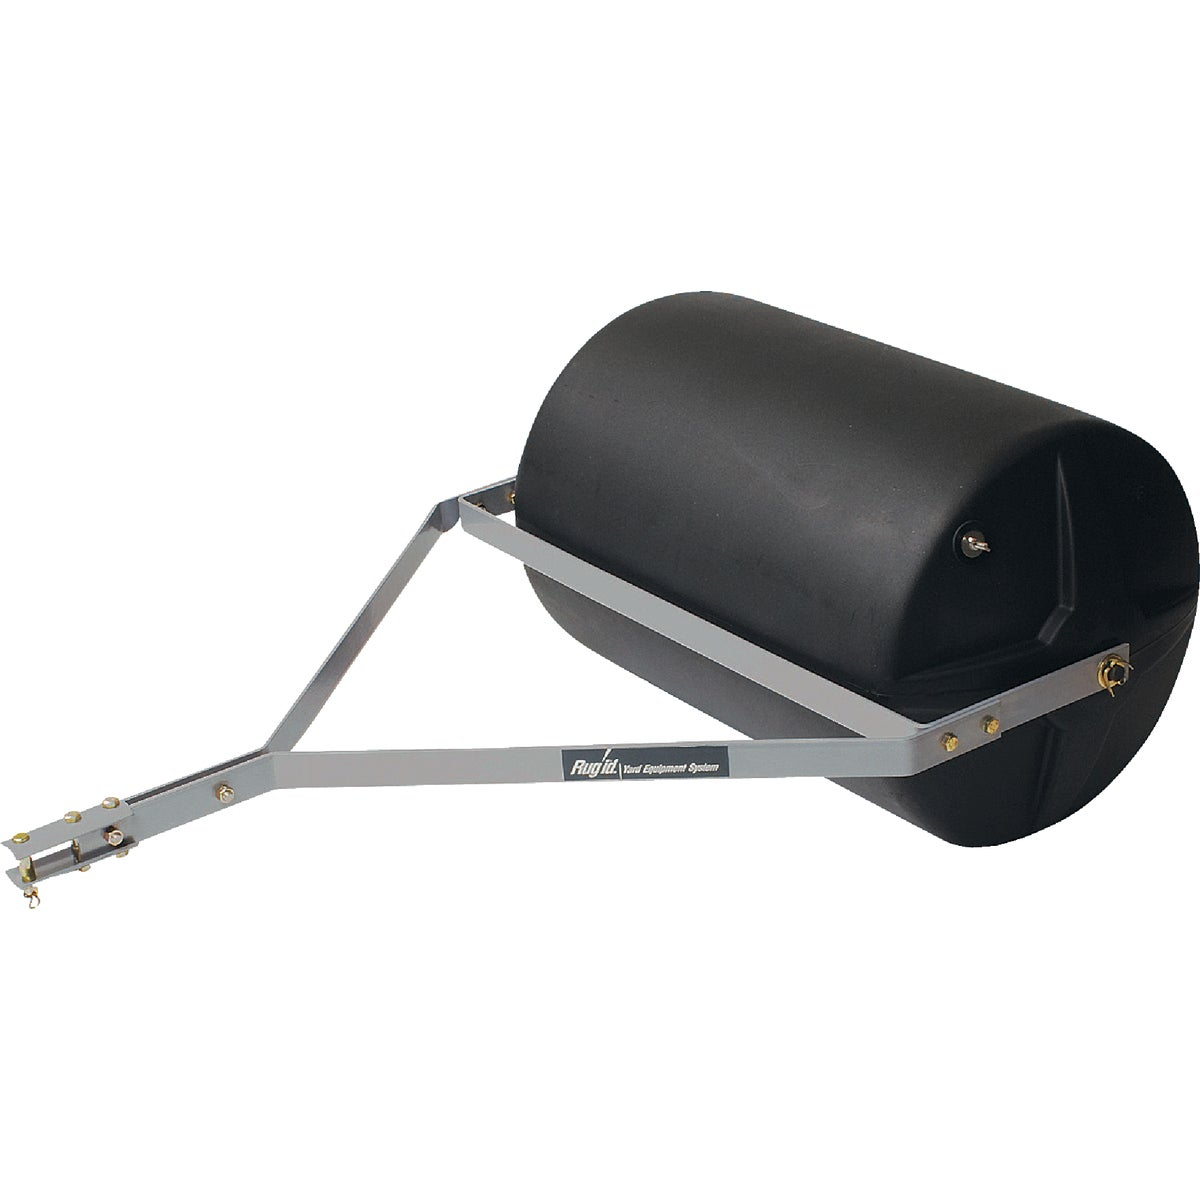 18X24 POLY LAWN ROLLER - PLR1824 by Precision Prod Inc